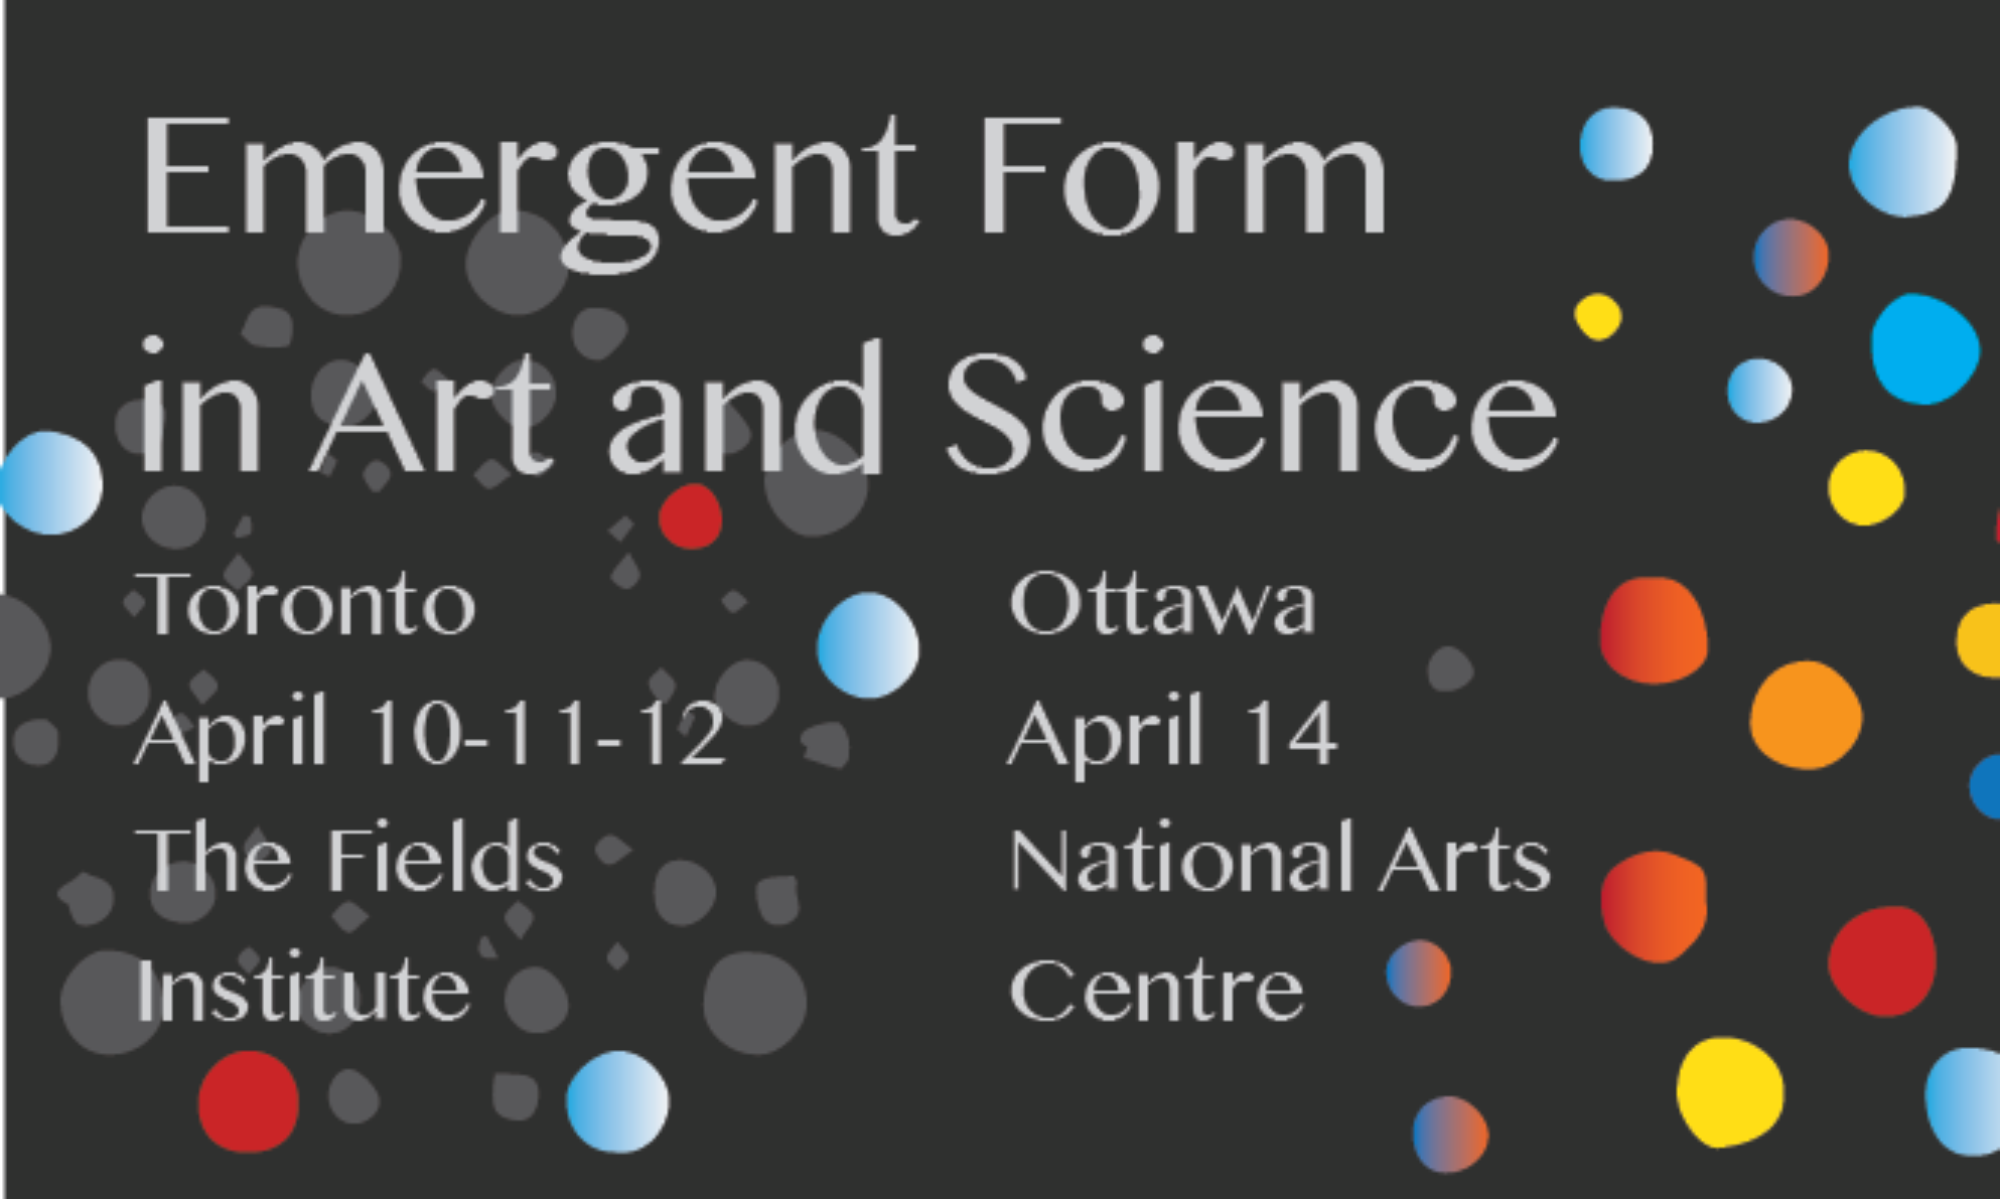 Emergent Form in Art and Science